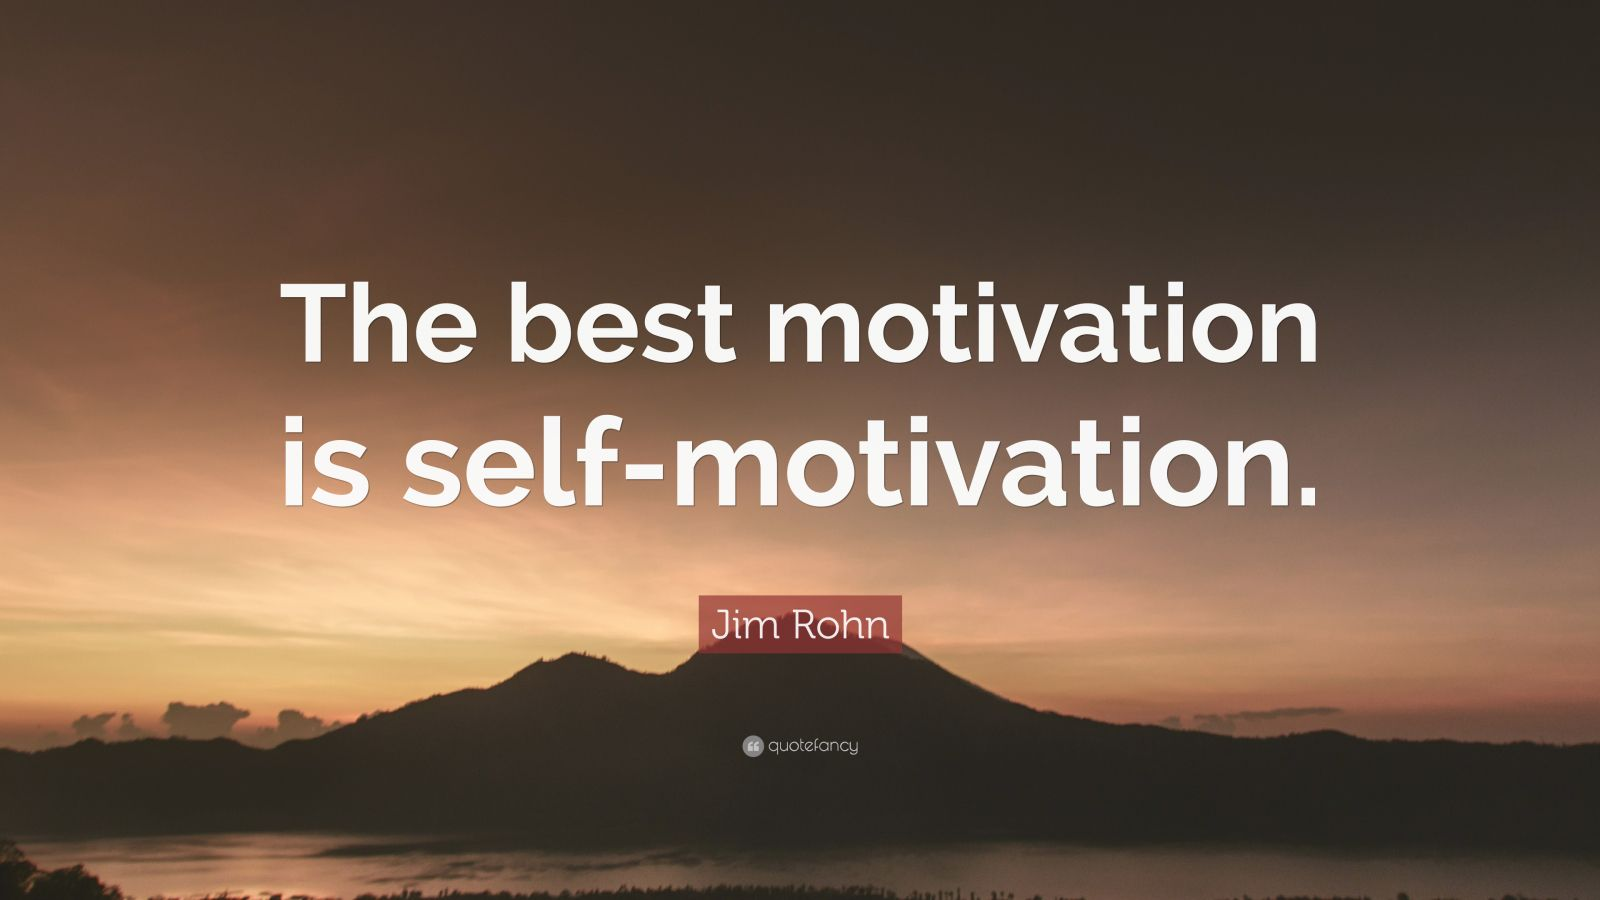 Inspirational Quotes About Life Wallpaper Jim Rohn Quote The Best Motivation Is Self Motivation